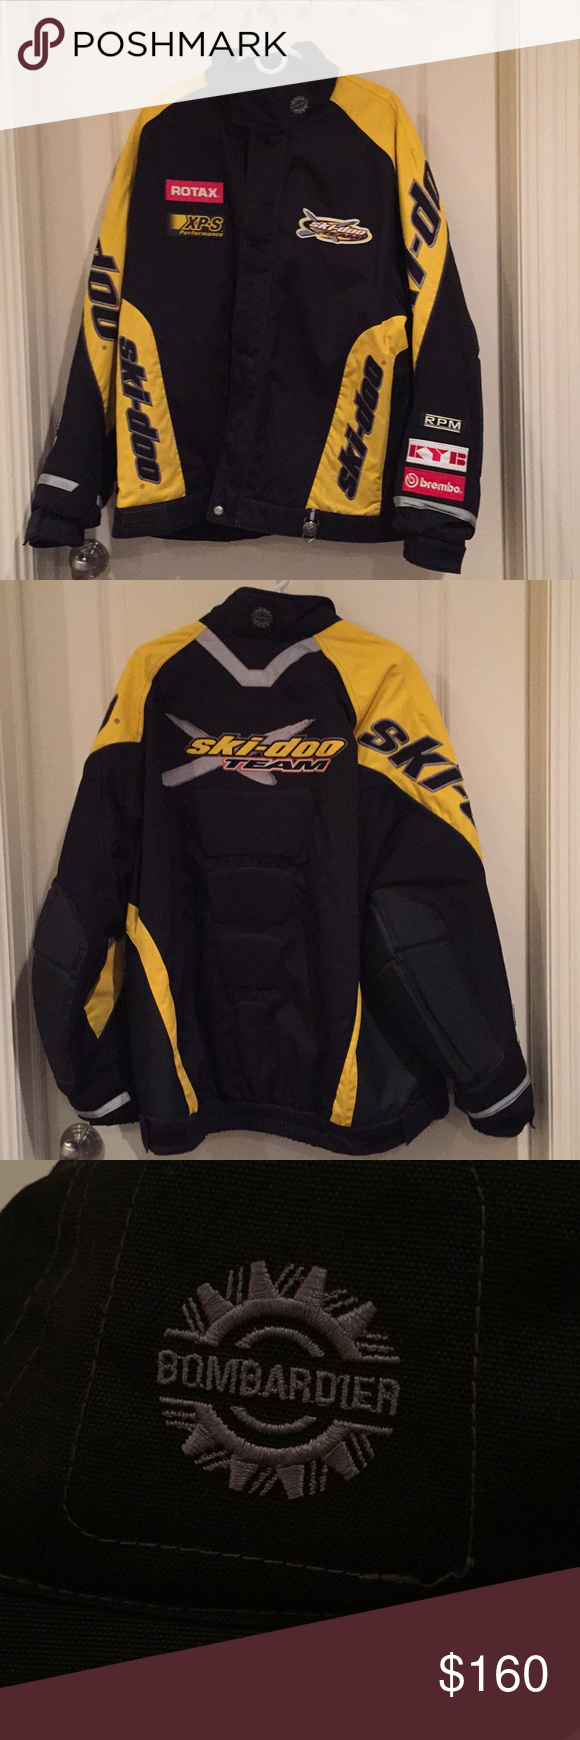 Lightly Used Ski Doo Men S Snowmobile Jacket With Images Jackets Clothes Design Fashion